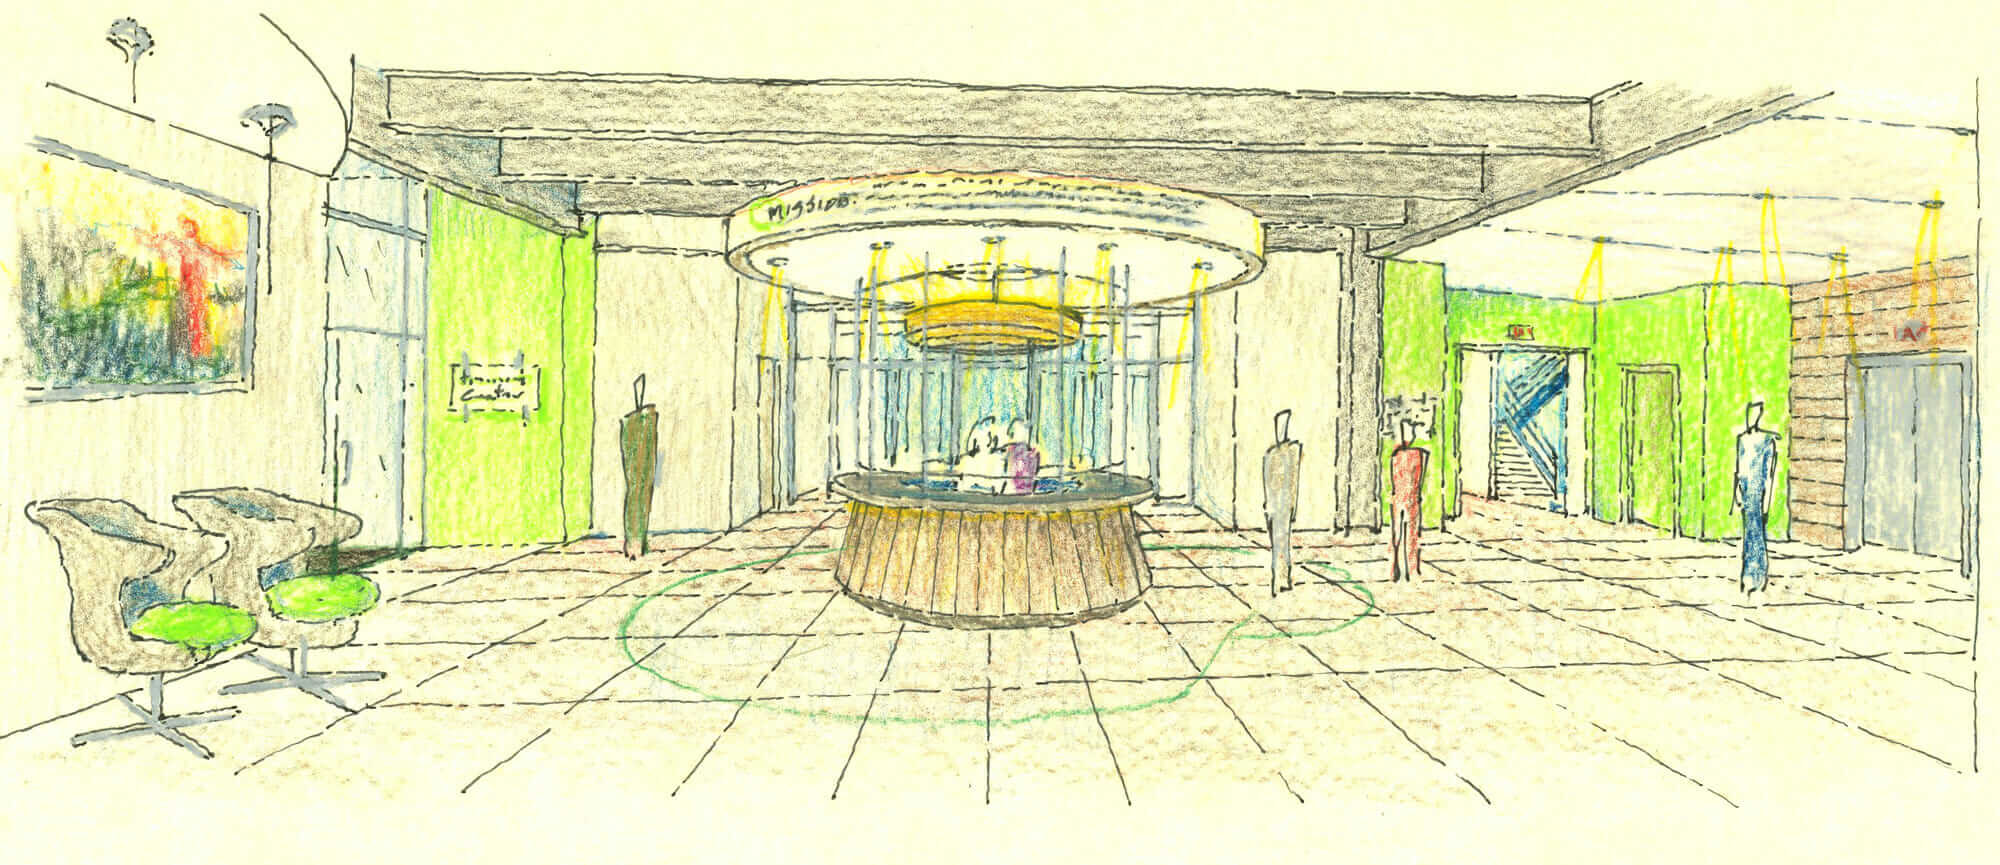 Lobby sketch of the Health Plan building in Wheeling, West Virginia.